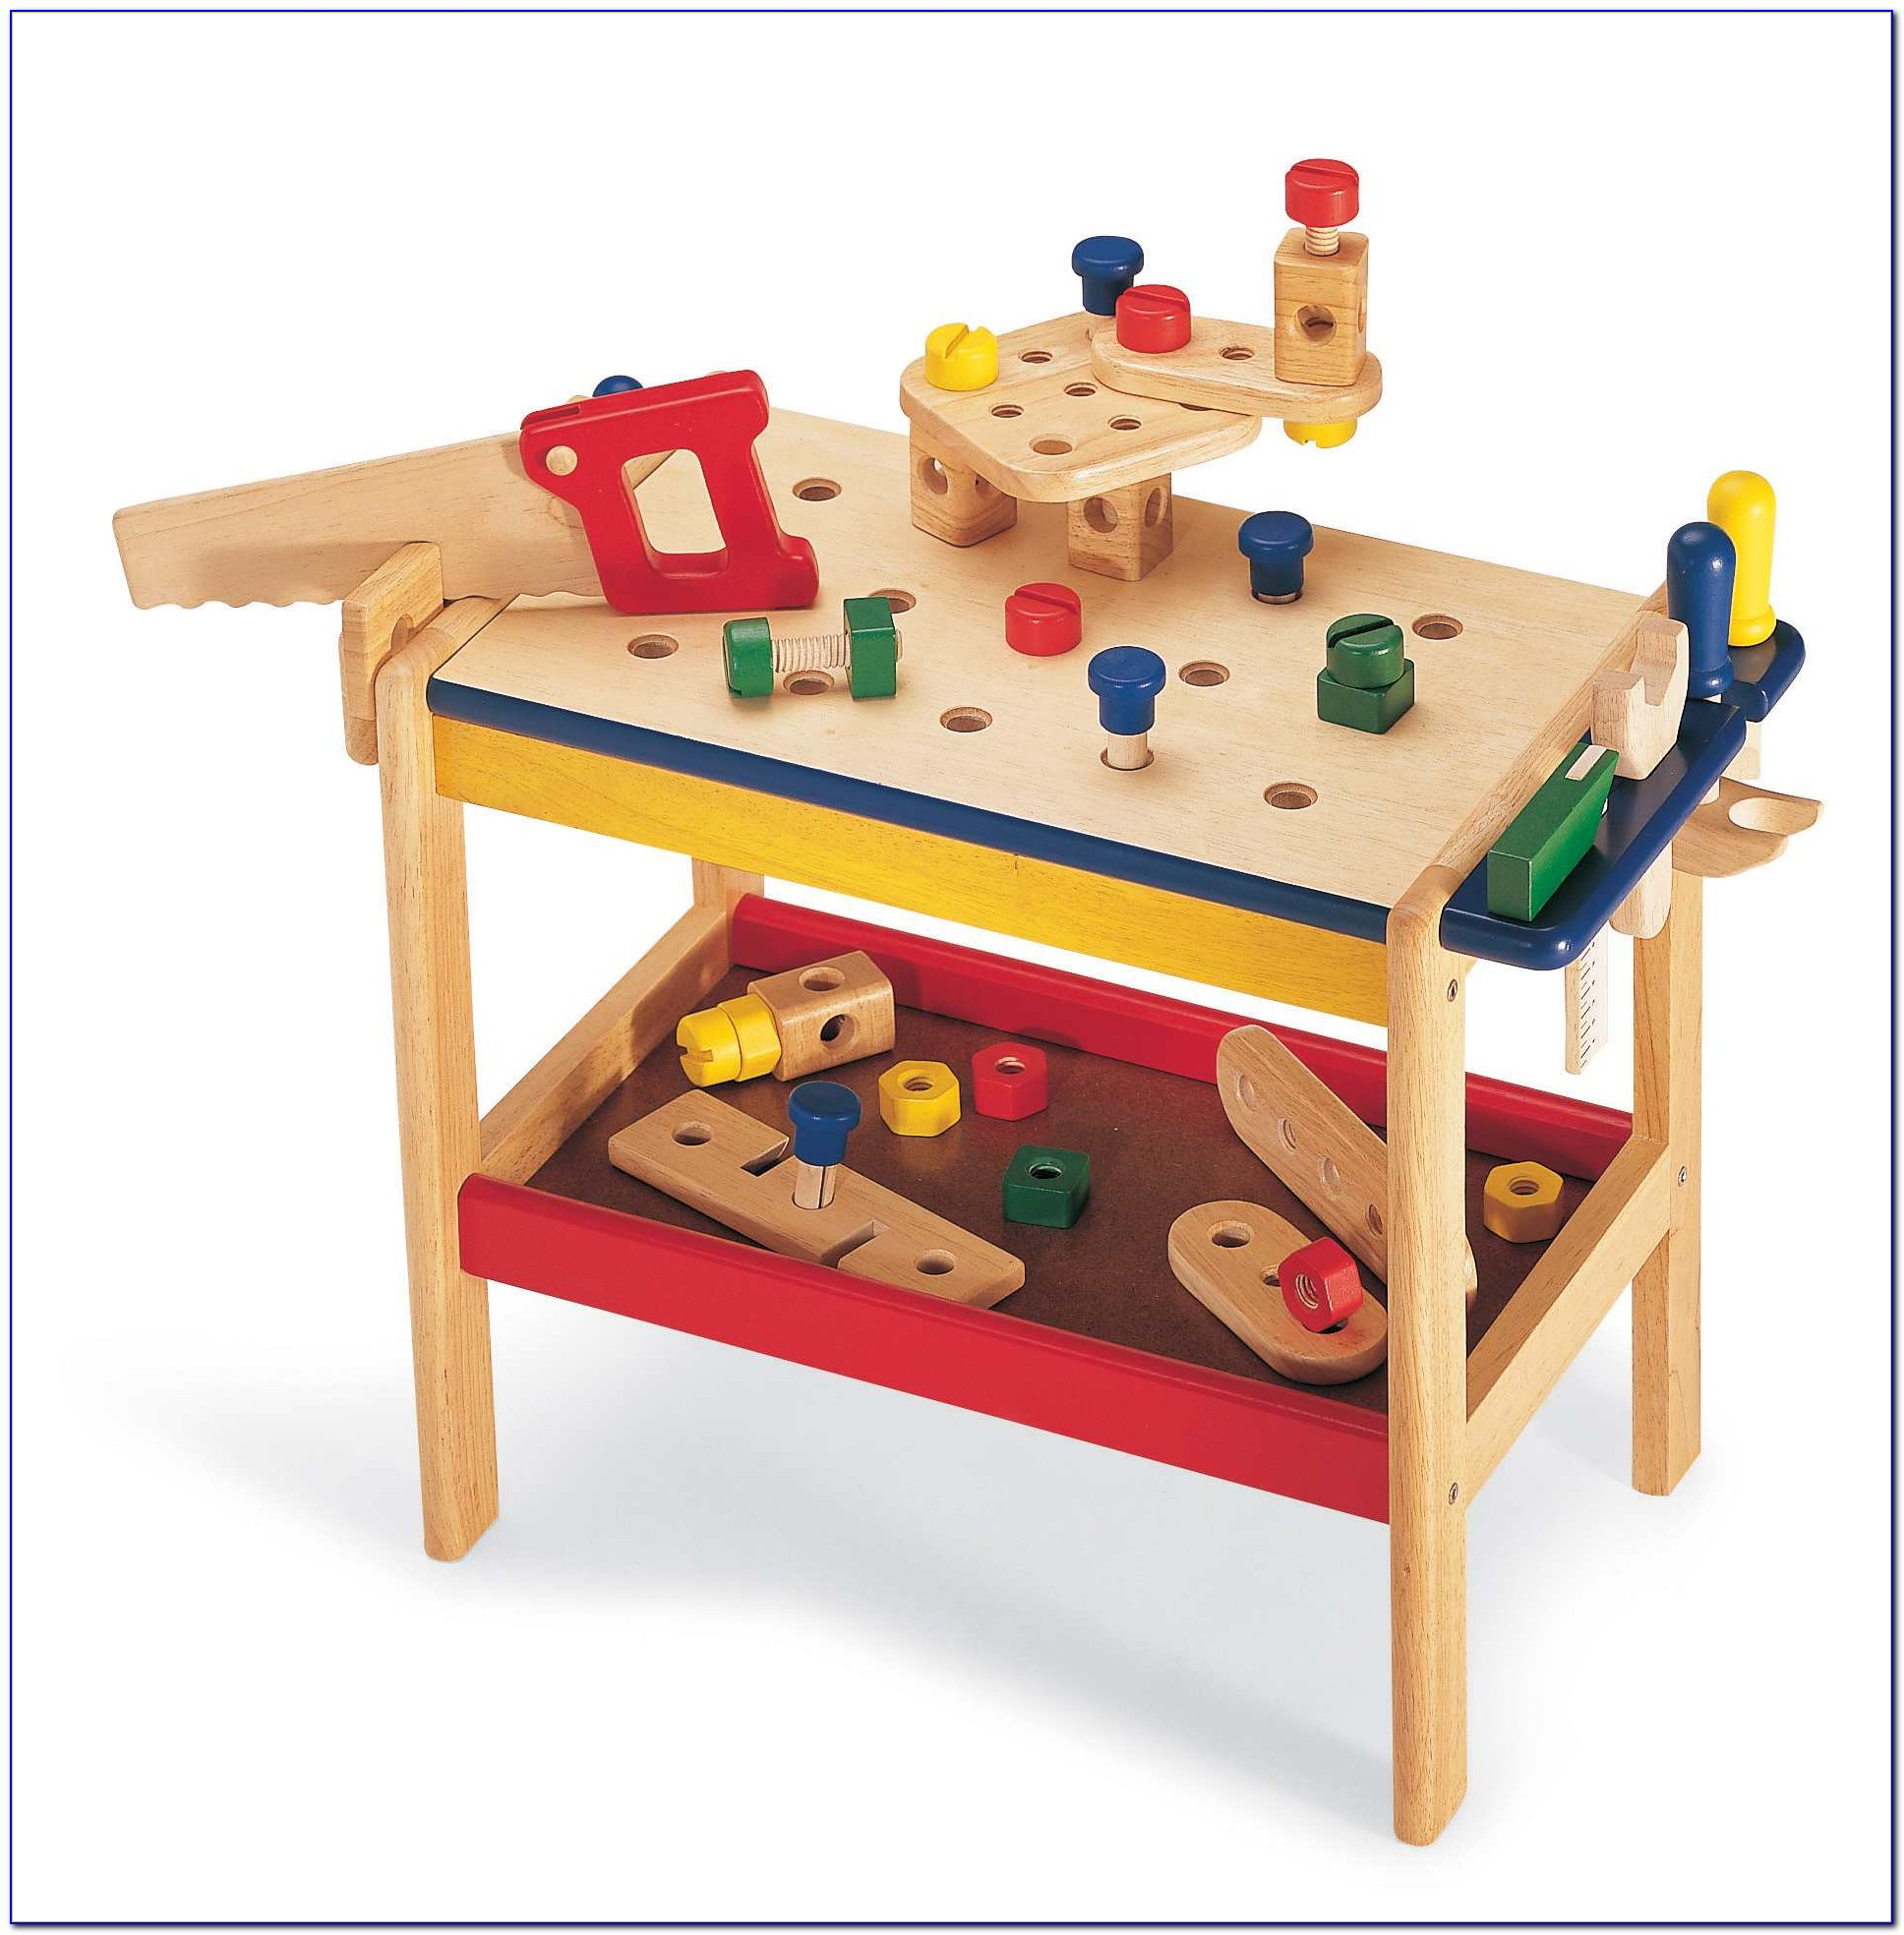 Wooden Toy Tool Bench Target